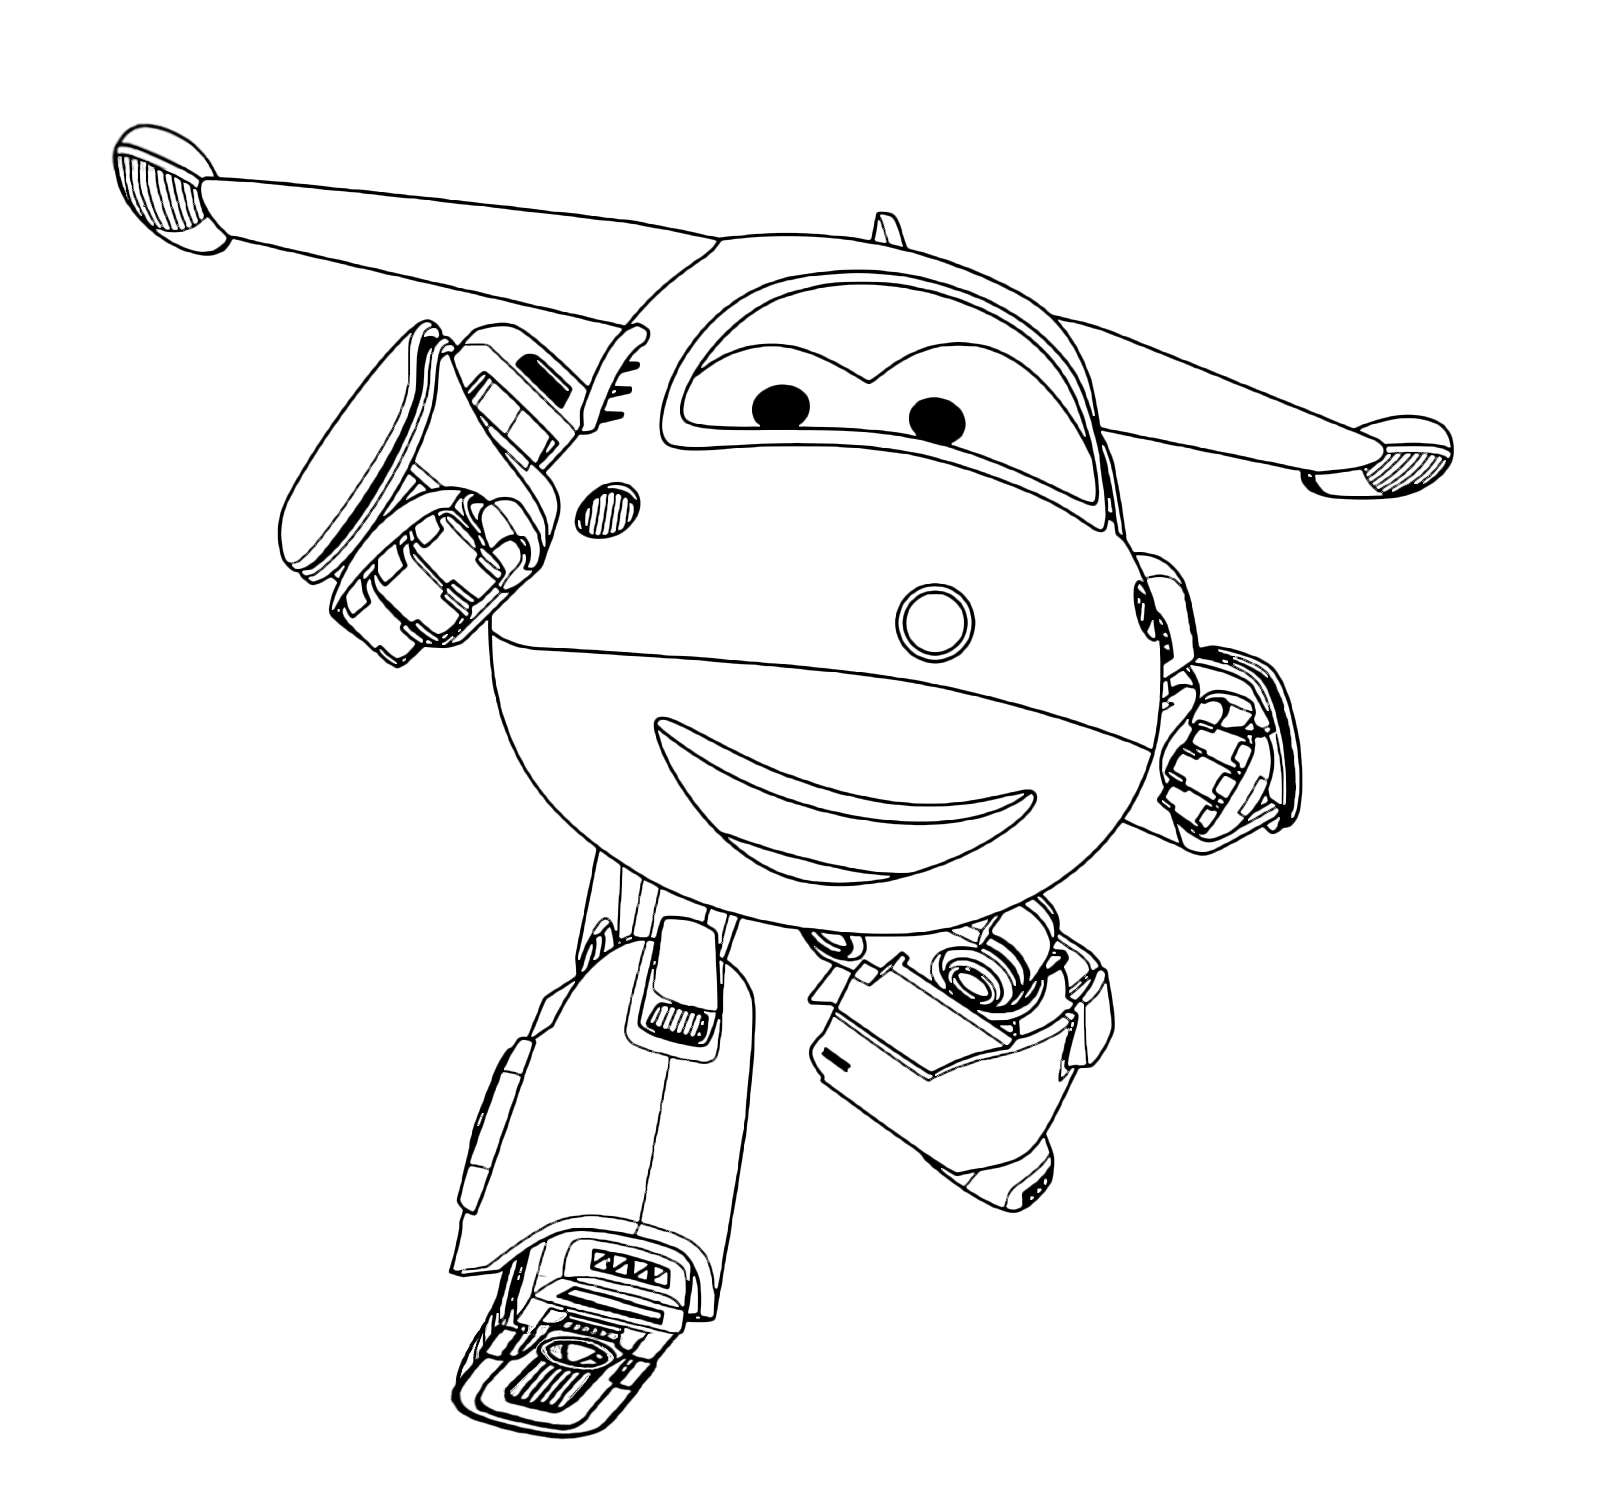 super wings coloring page wings jett plane white and red which takes the packages to children - Sprout Super Wings Coloring Pages